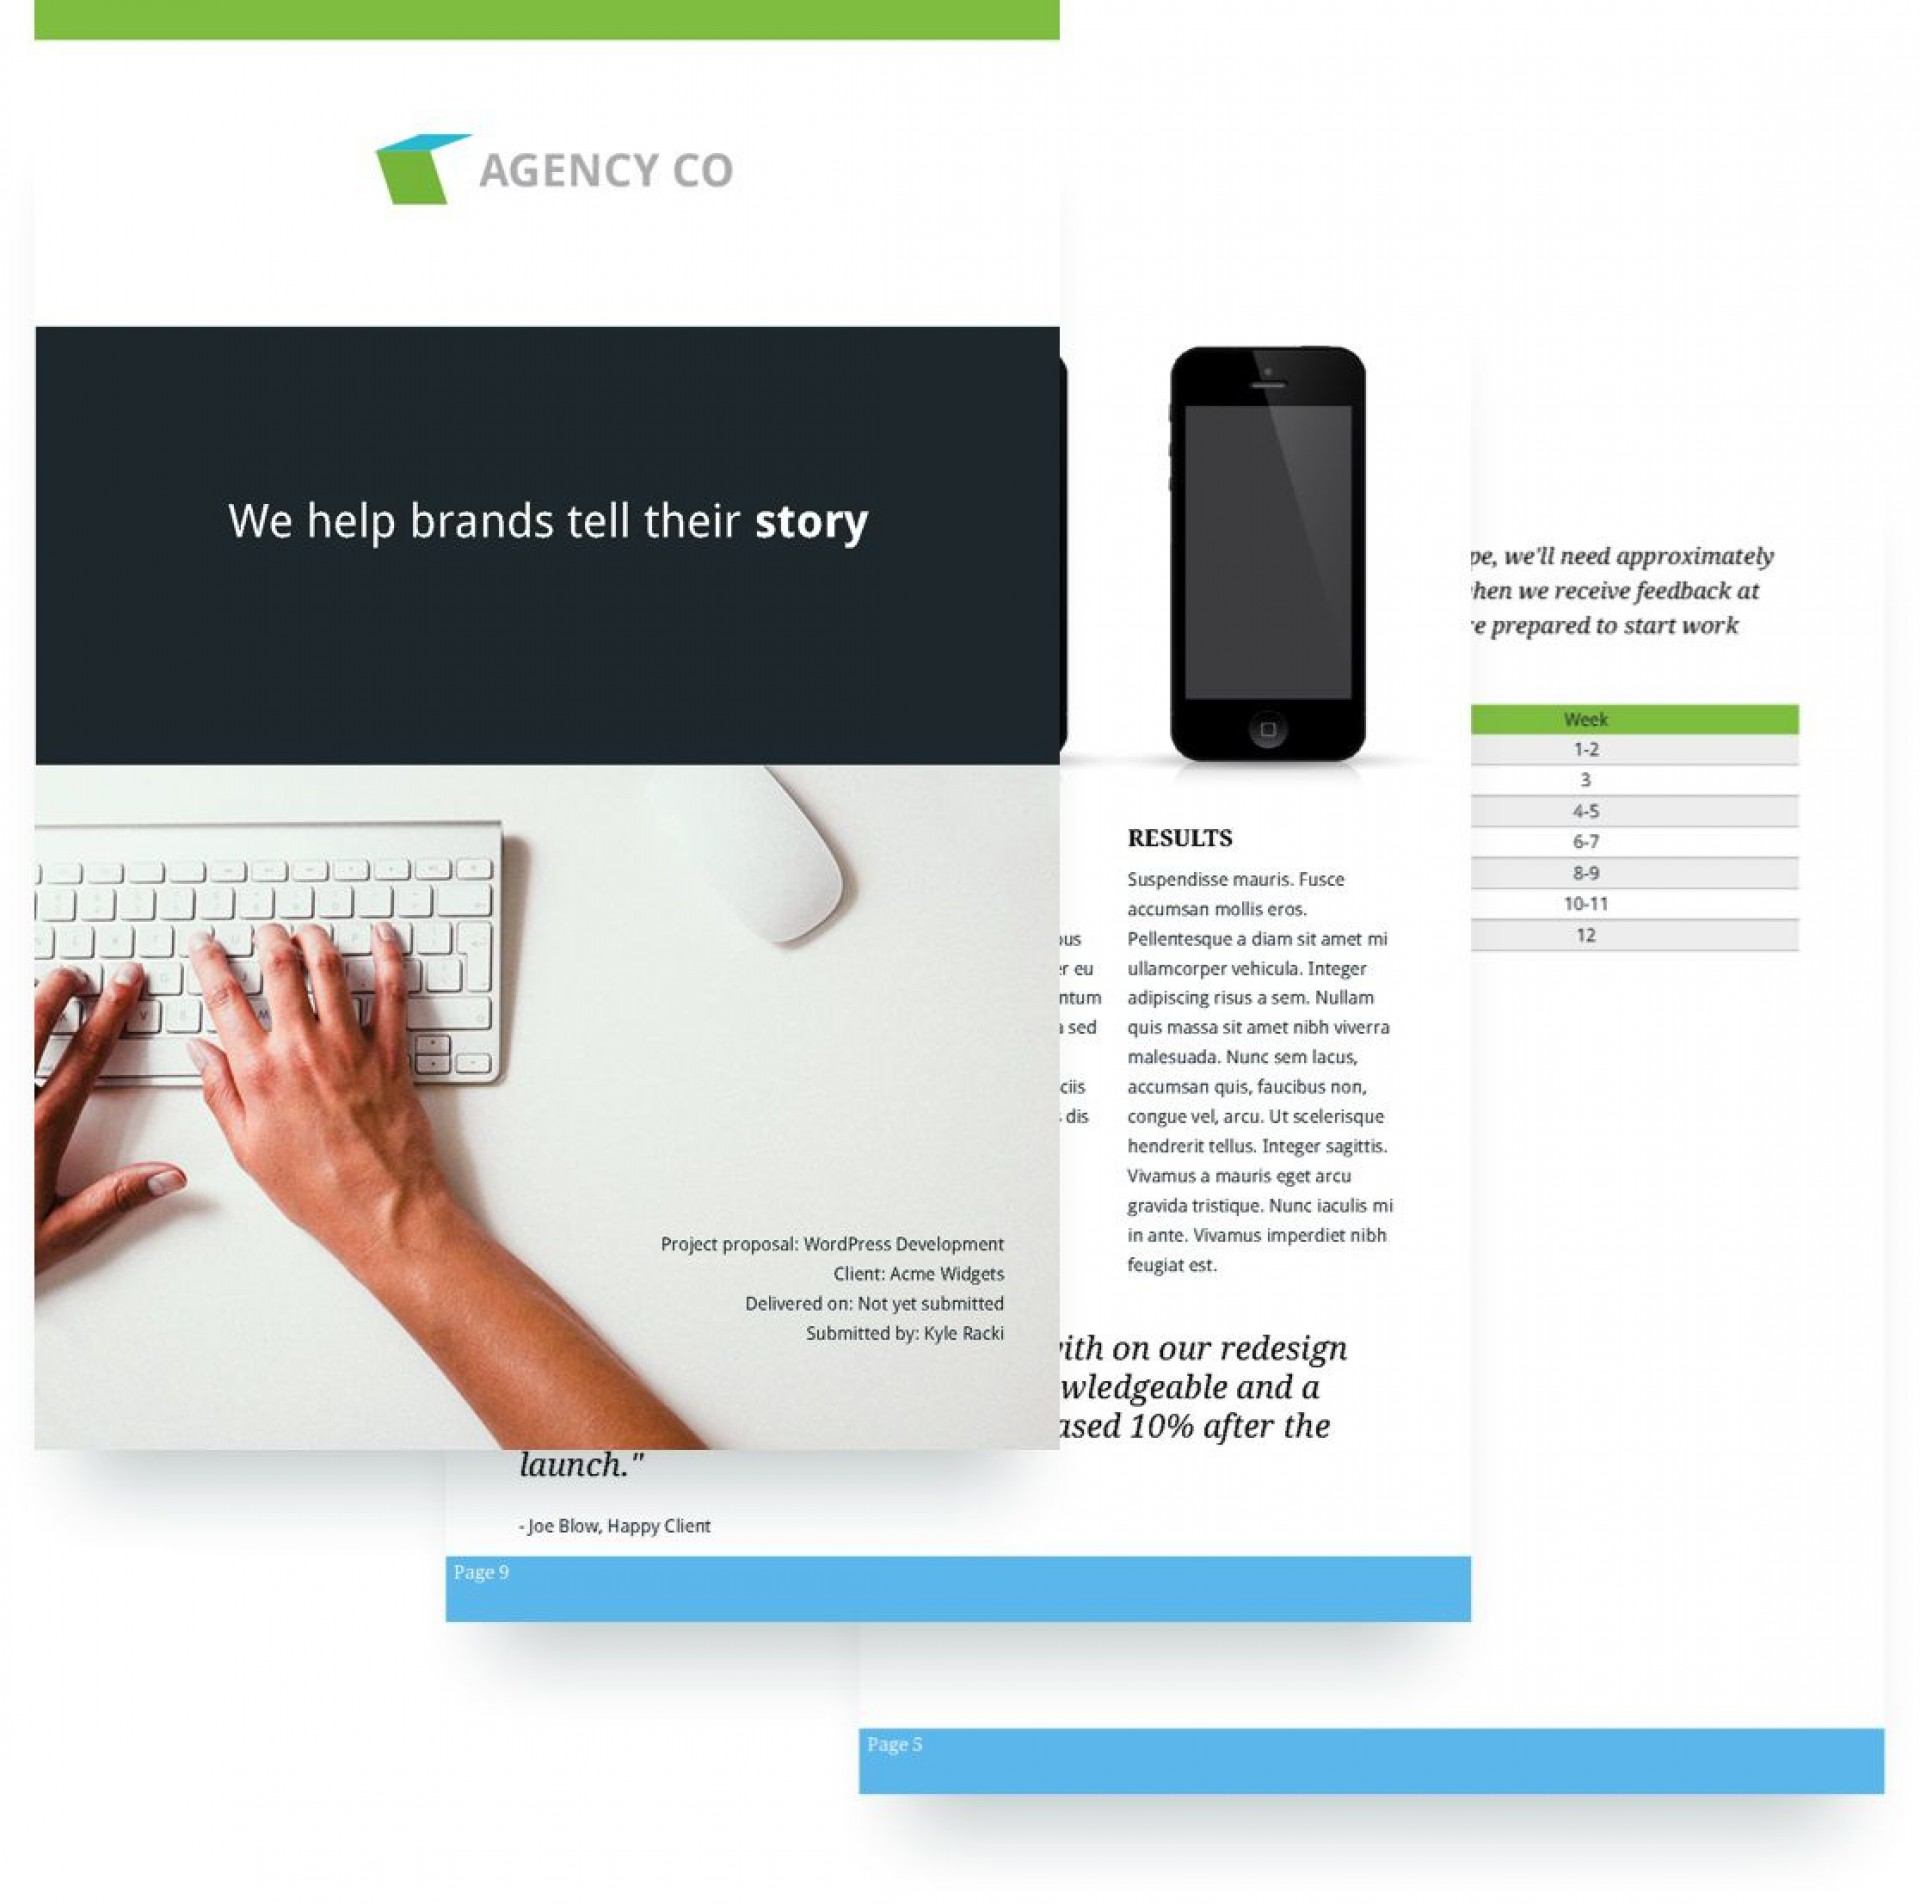 009 Magnificent Website Development Proposal Template Image  Web Free Document Portal1920